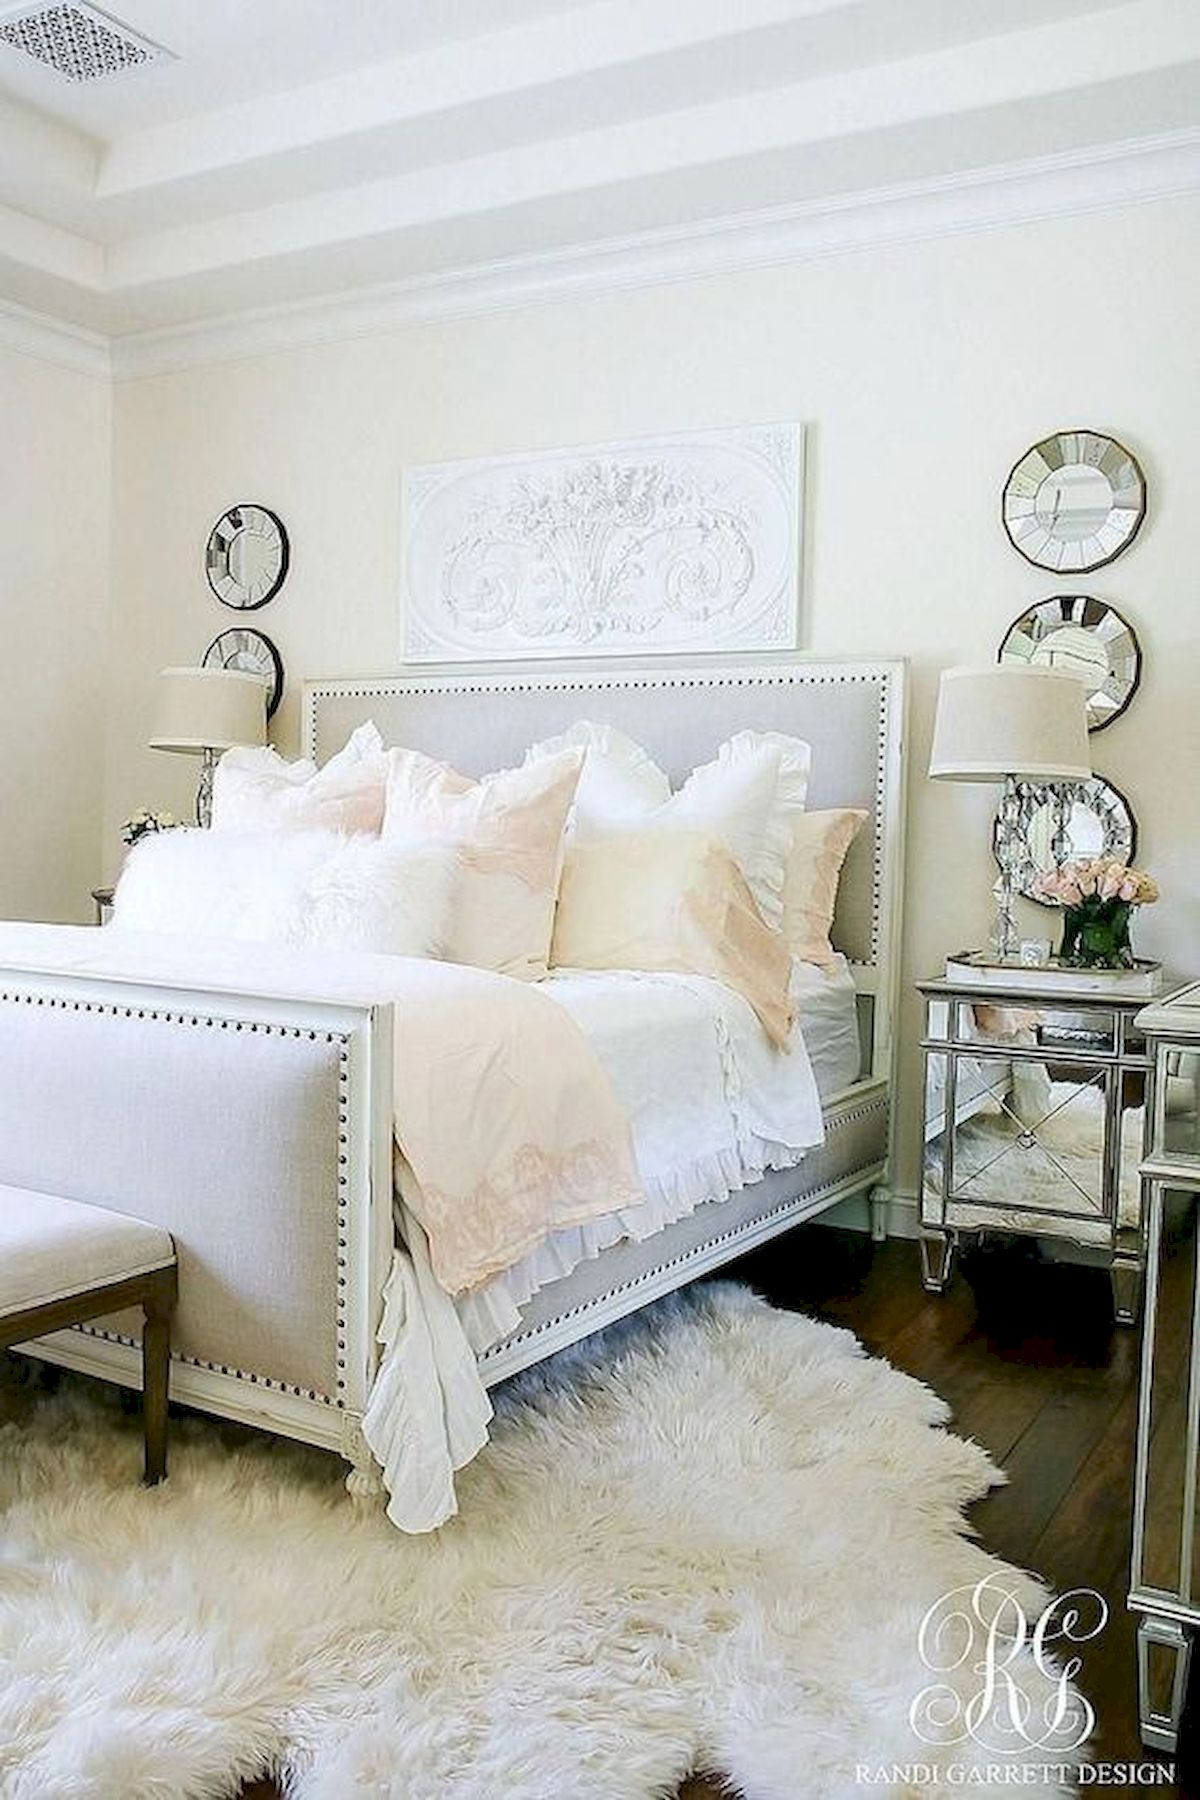 44 Awesome White Master Bedroom Design and Decor Ideas For Any Home Design (10)